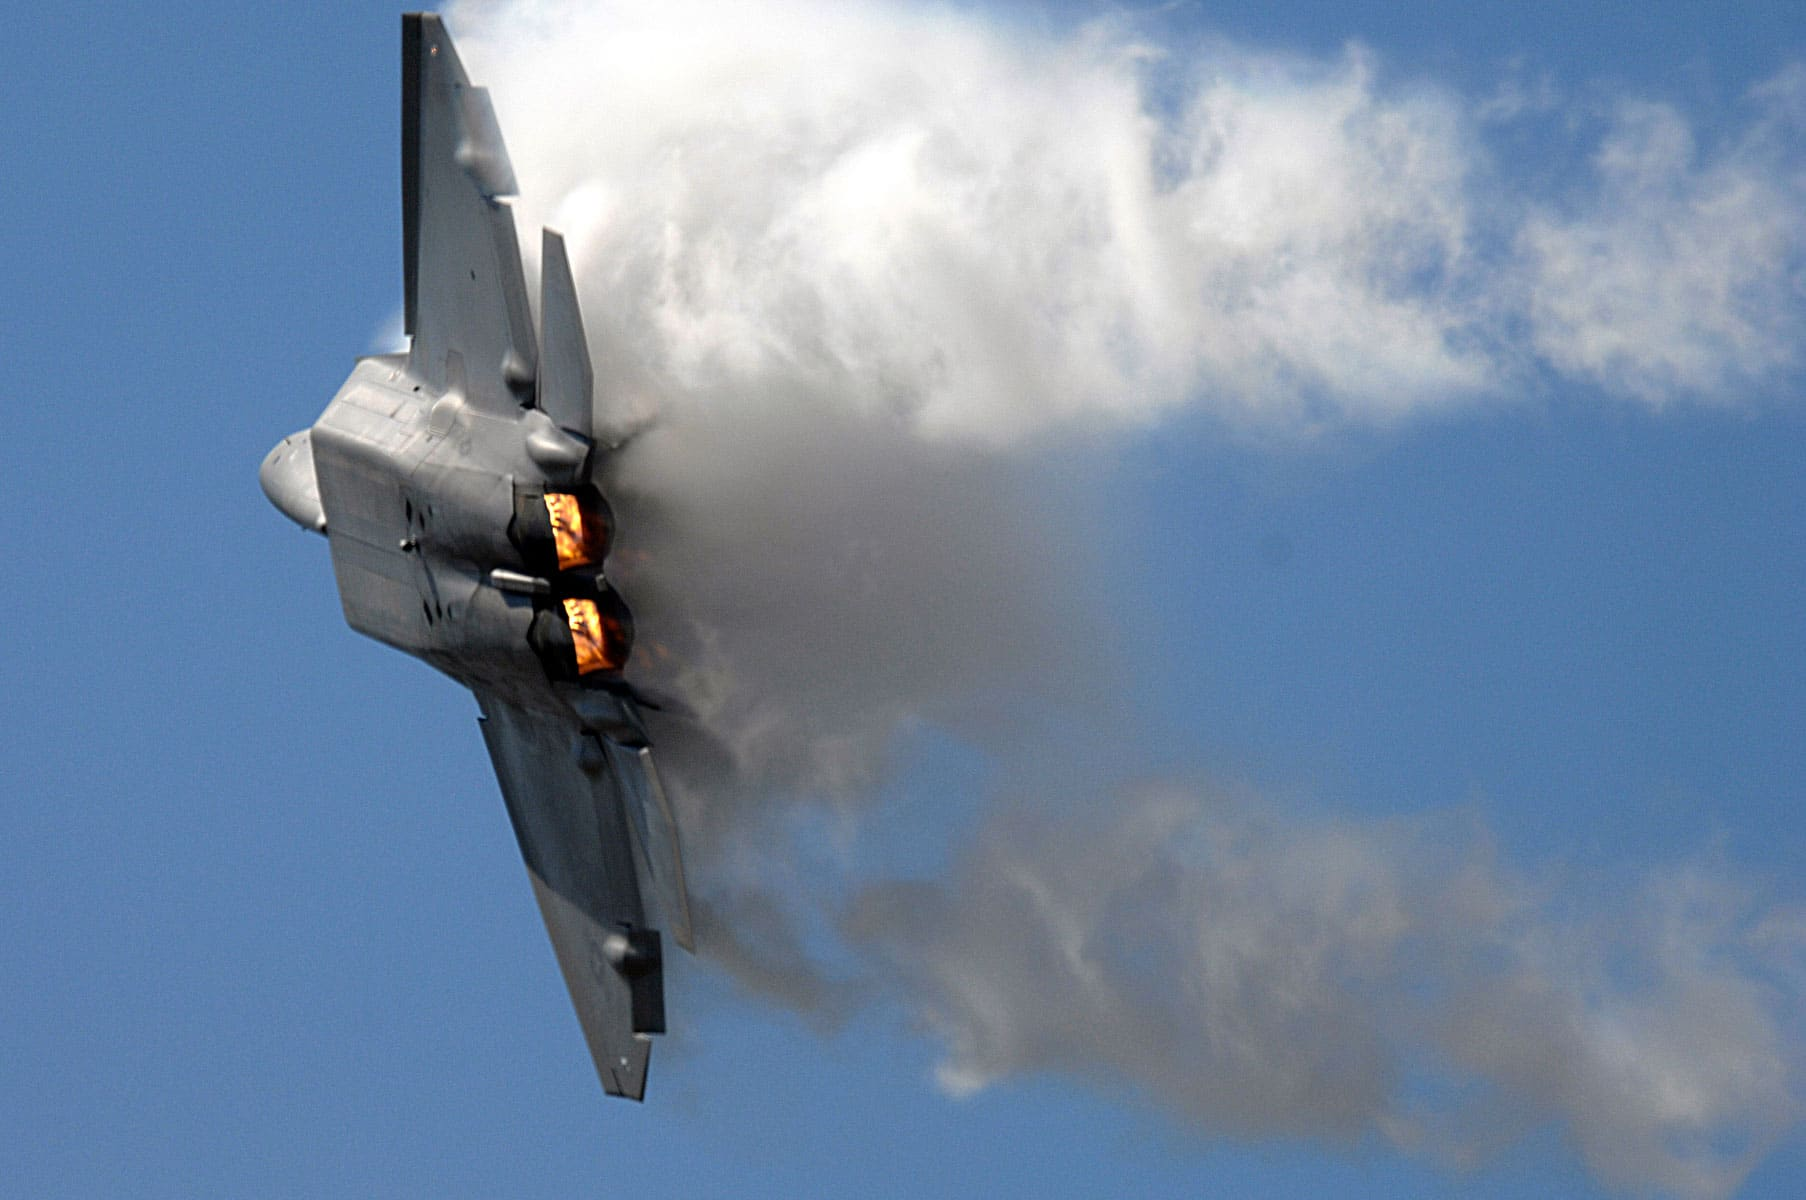 The F-22 Raptor is the Air Force's newest stealth military fighter aircraft.